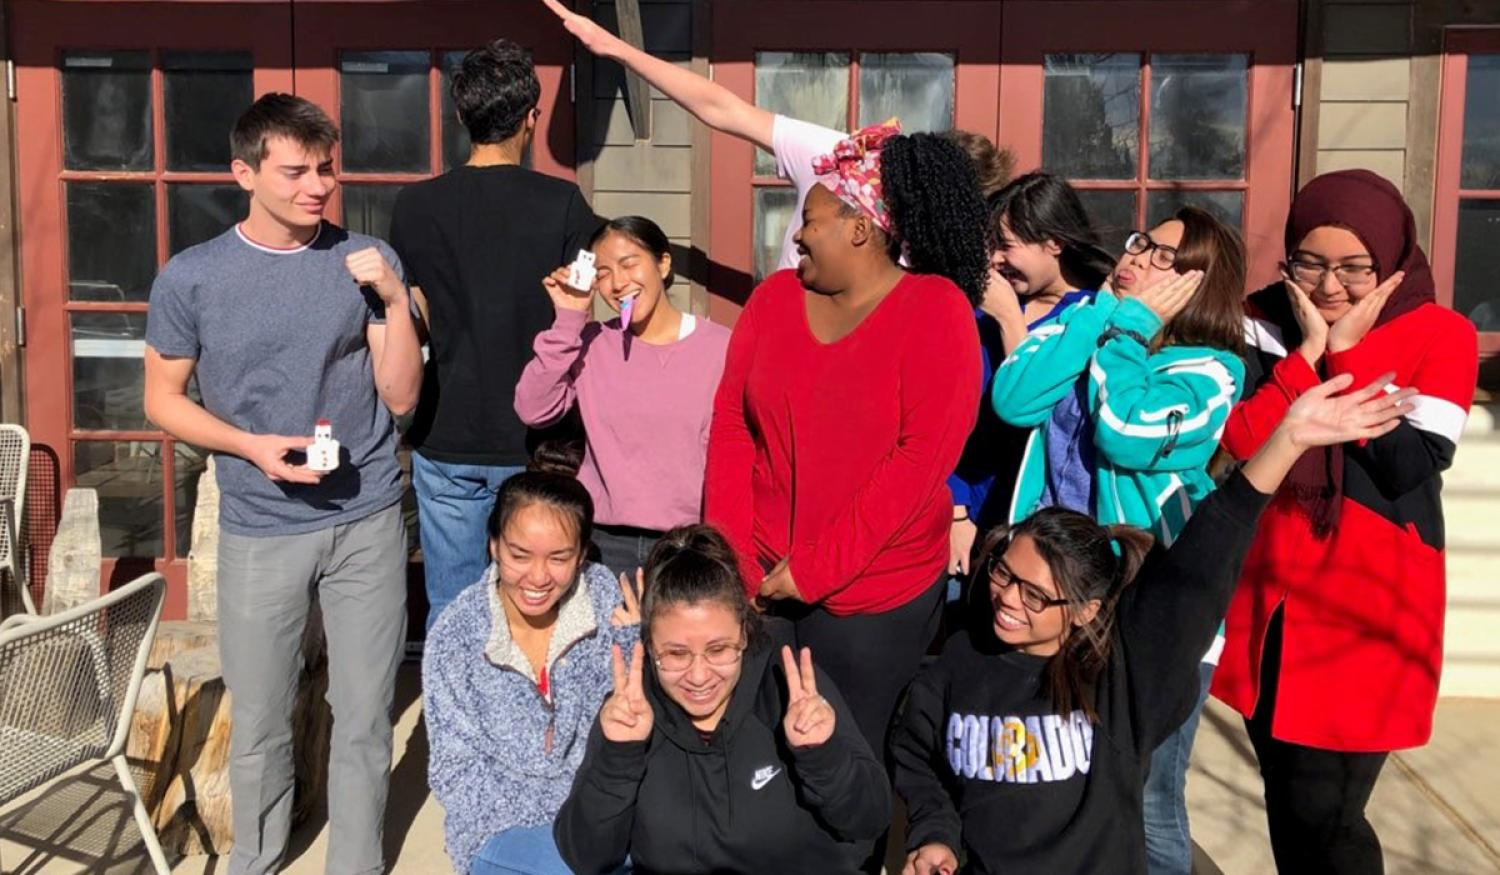 2019 Mini-PEAC Students Laughing Together